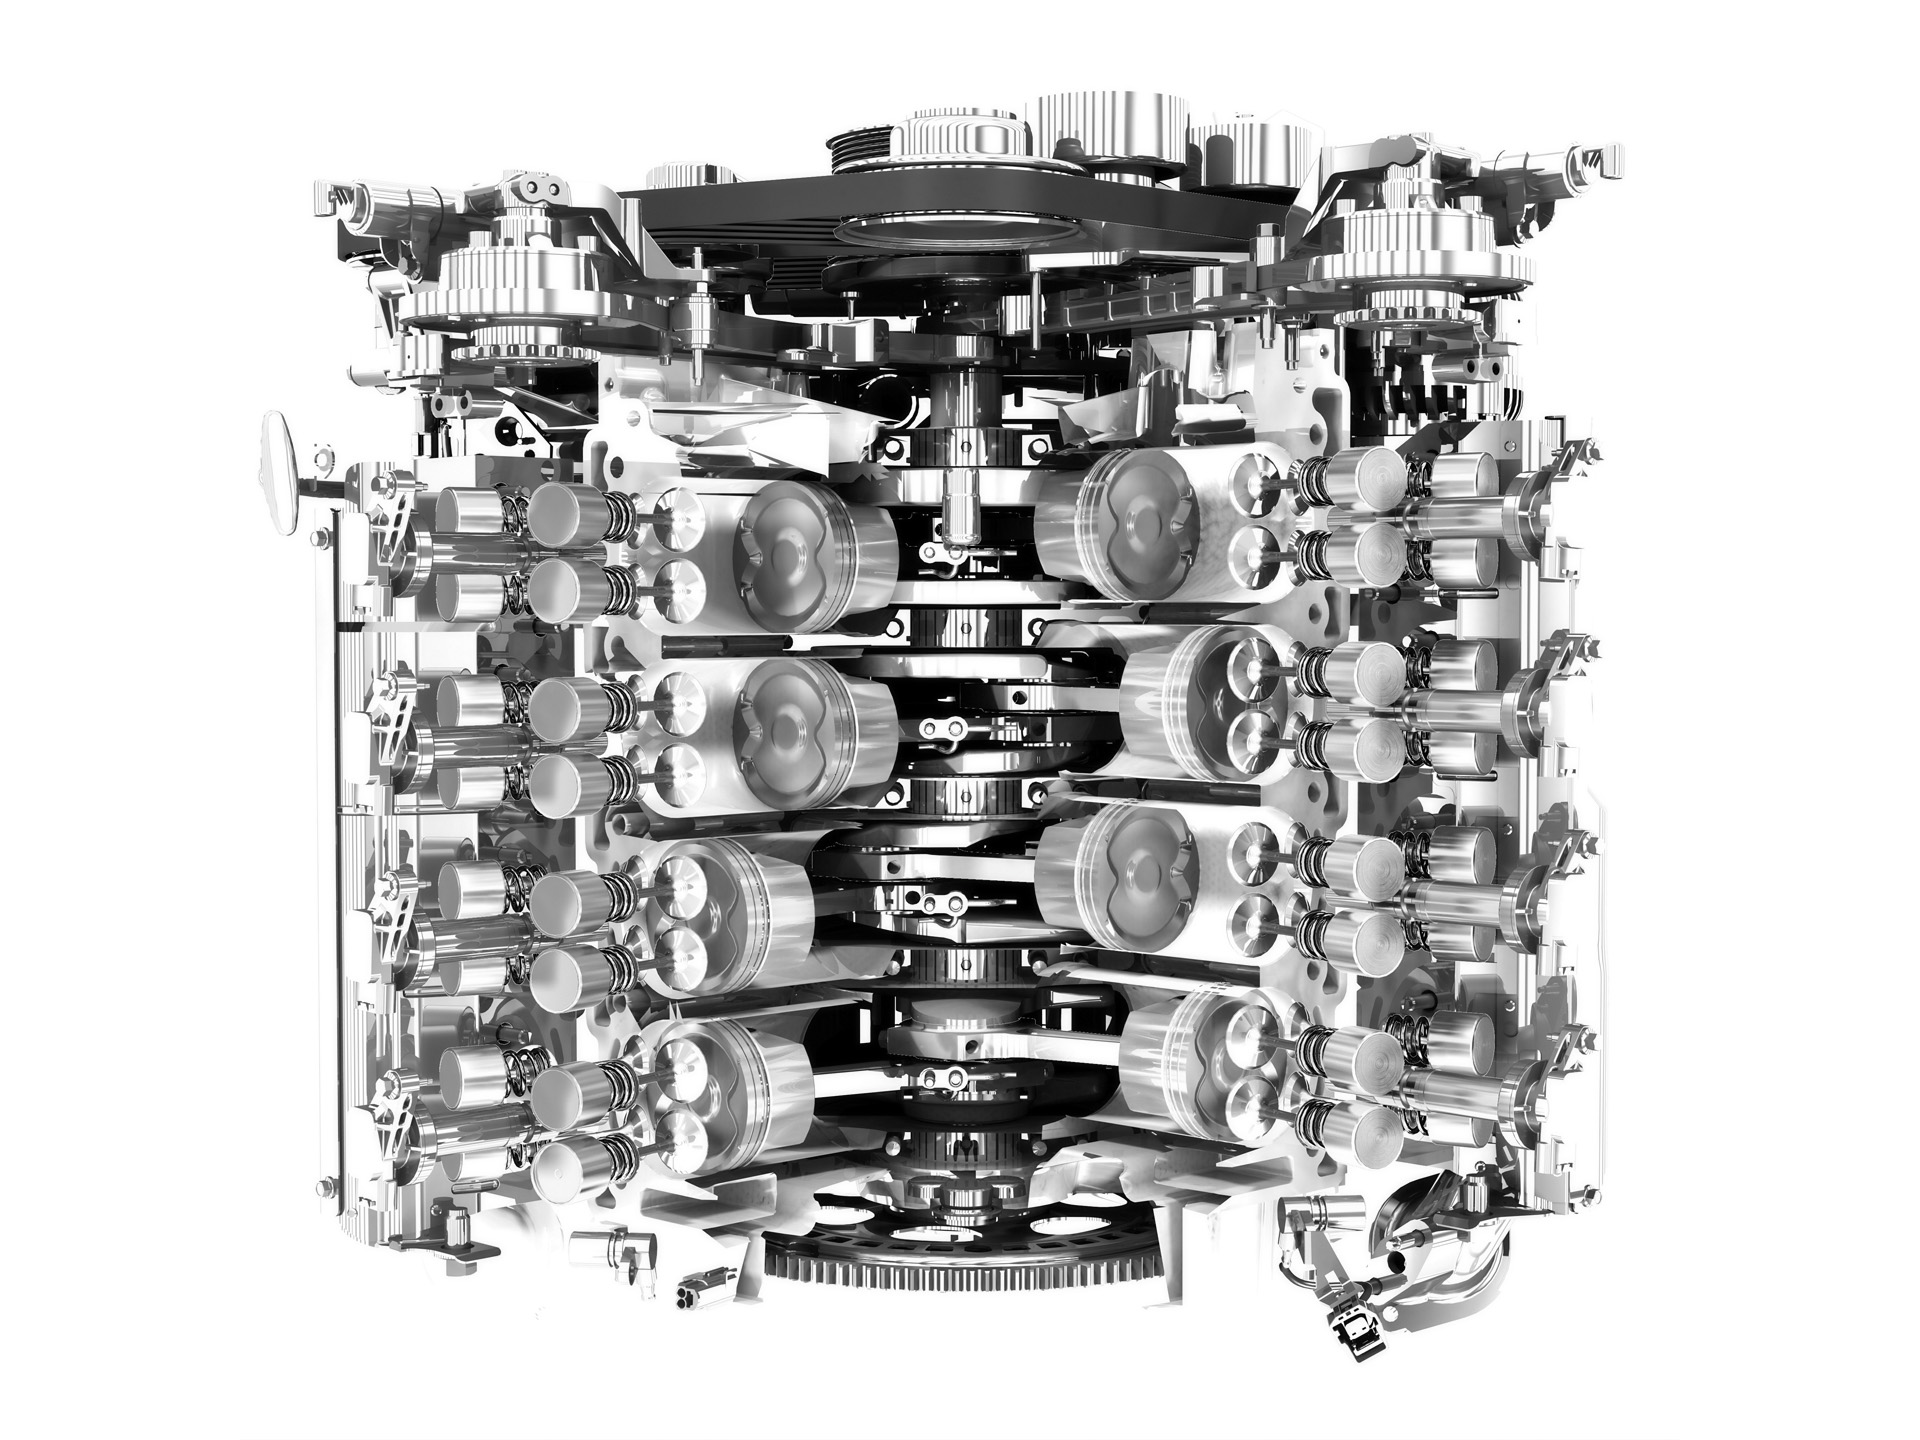 Sample P1168 Engine